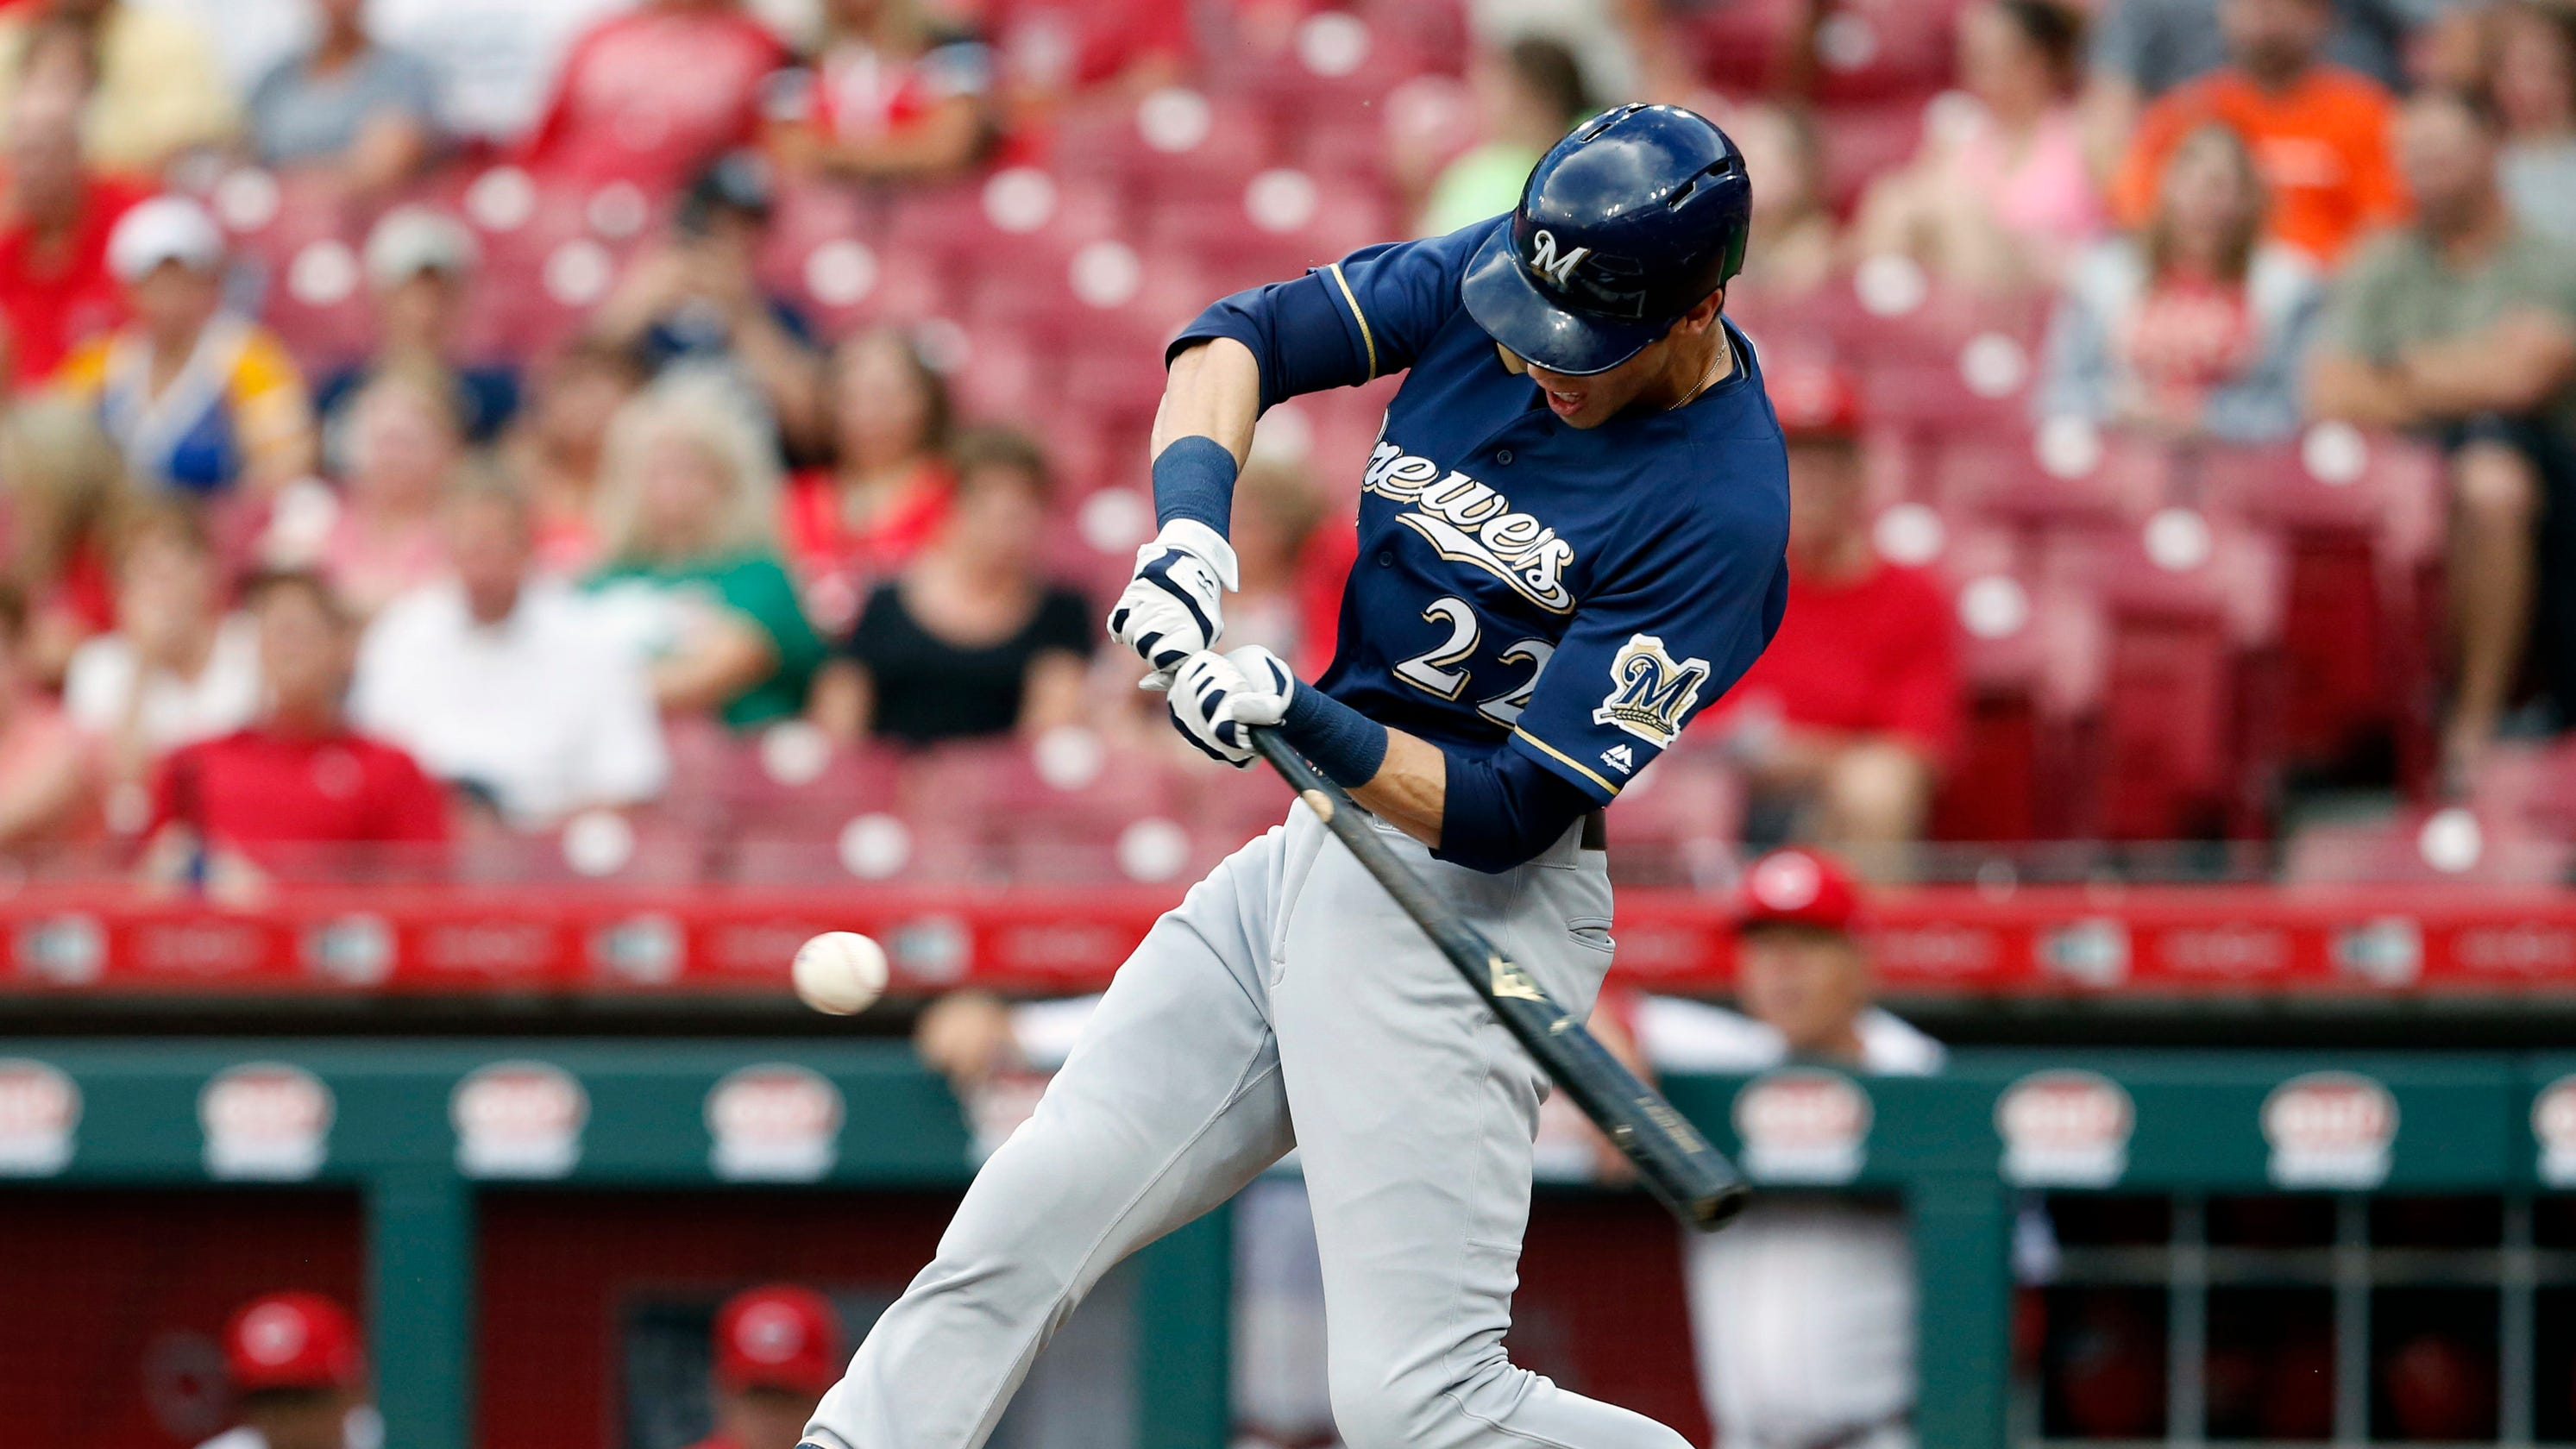 wholesale dealer 0cc64 3b11c Ode to the other 3 Milwaukee Brewers to hit for the cycle ...